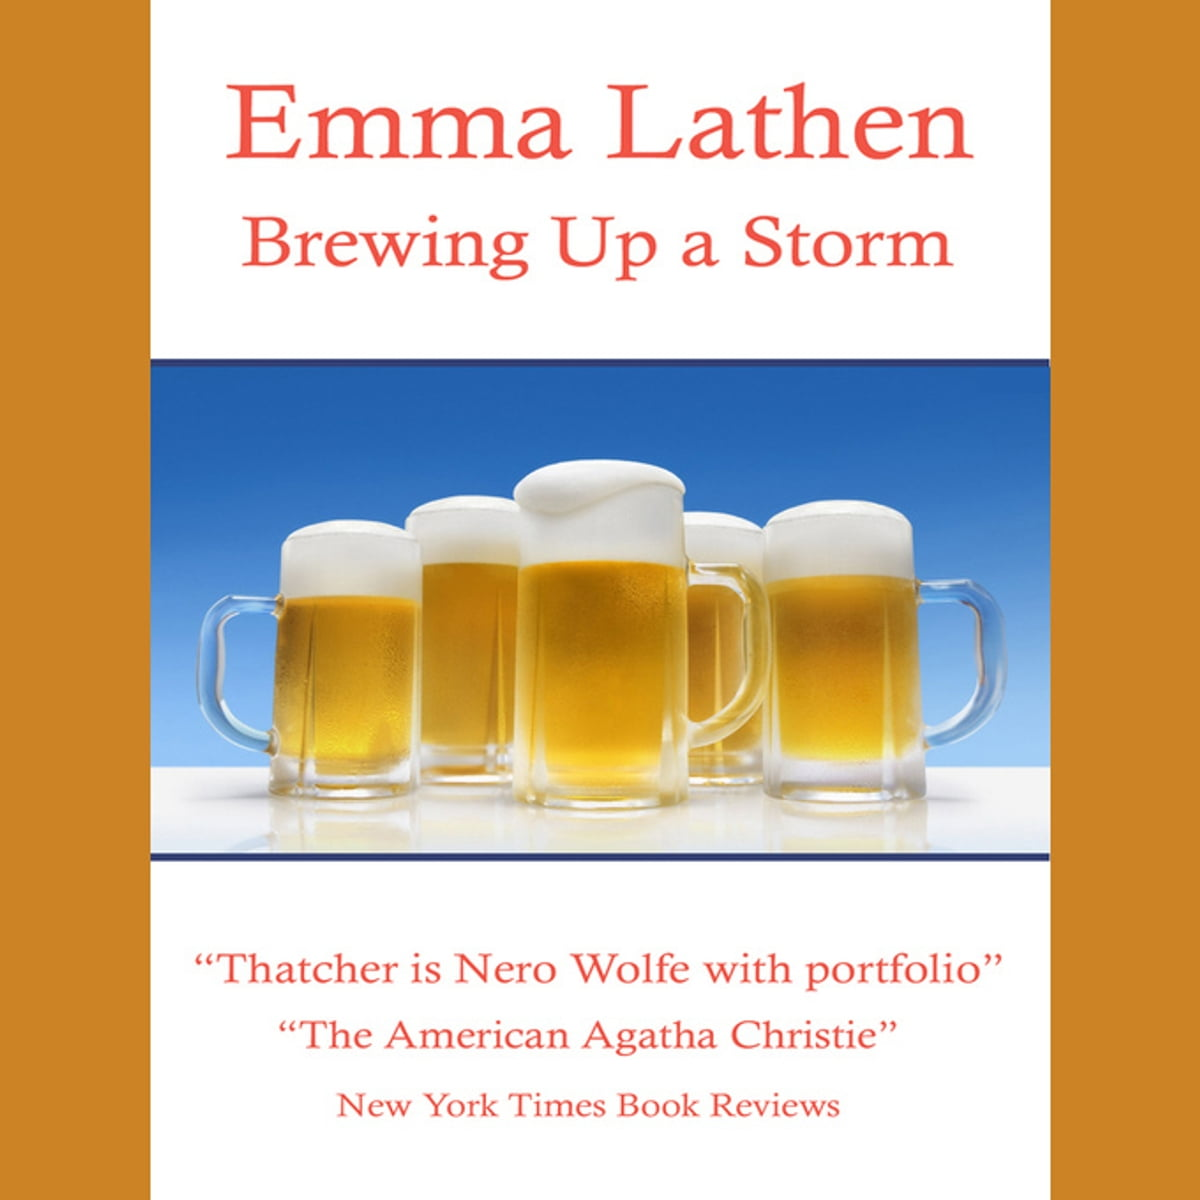 Brewing Up a Storm Audiobook by Emma Lathen - 9781614964025 | Rakuten Kobo